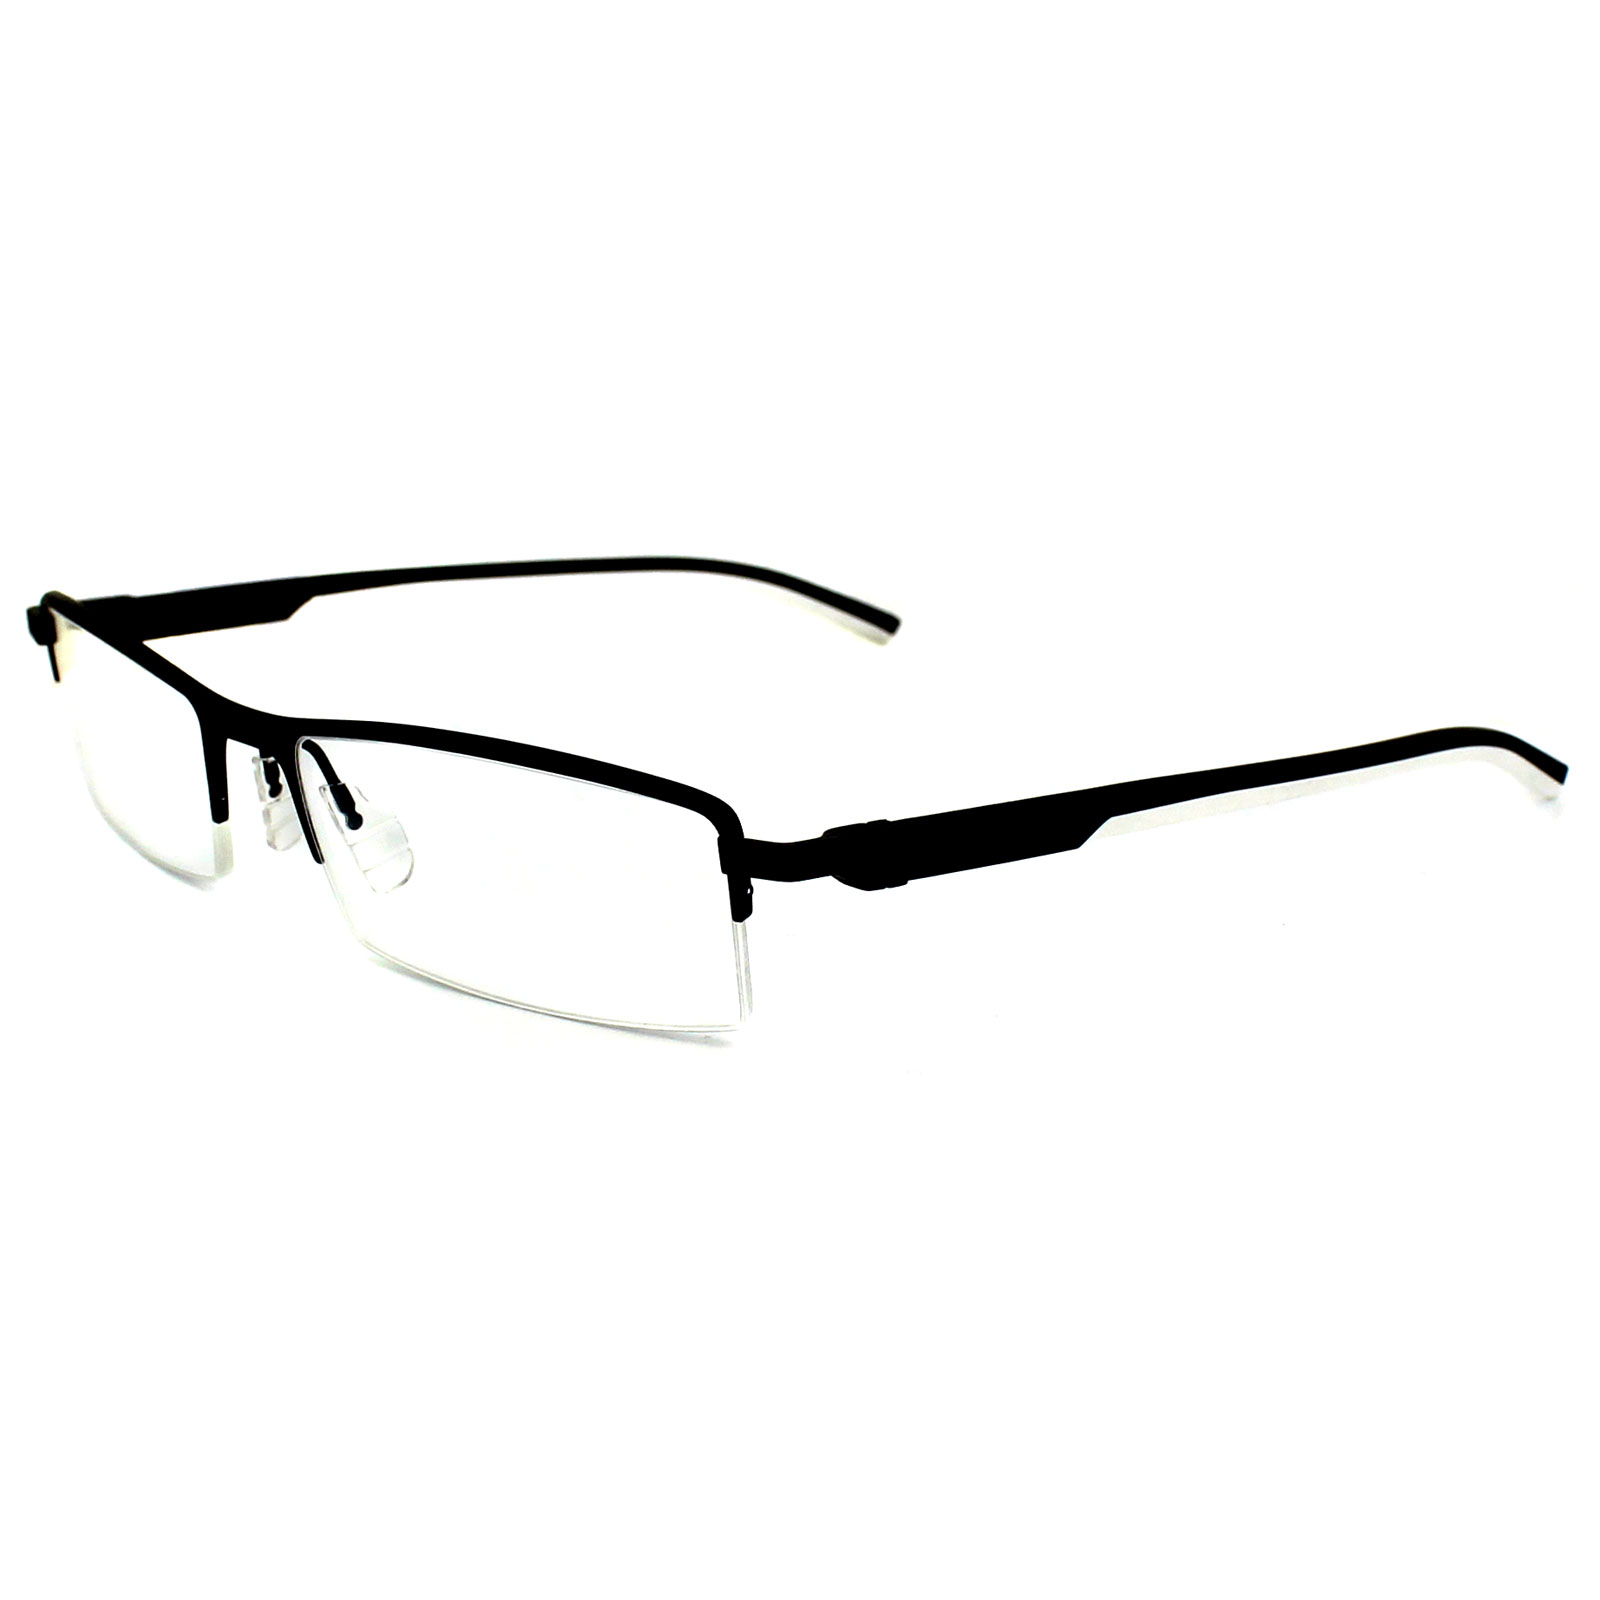 Eyeglass Frame Tag Heuer : Tag Heuer Glasses Frames Automatic 0821 011 Matt Black ...